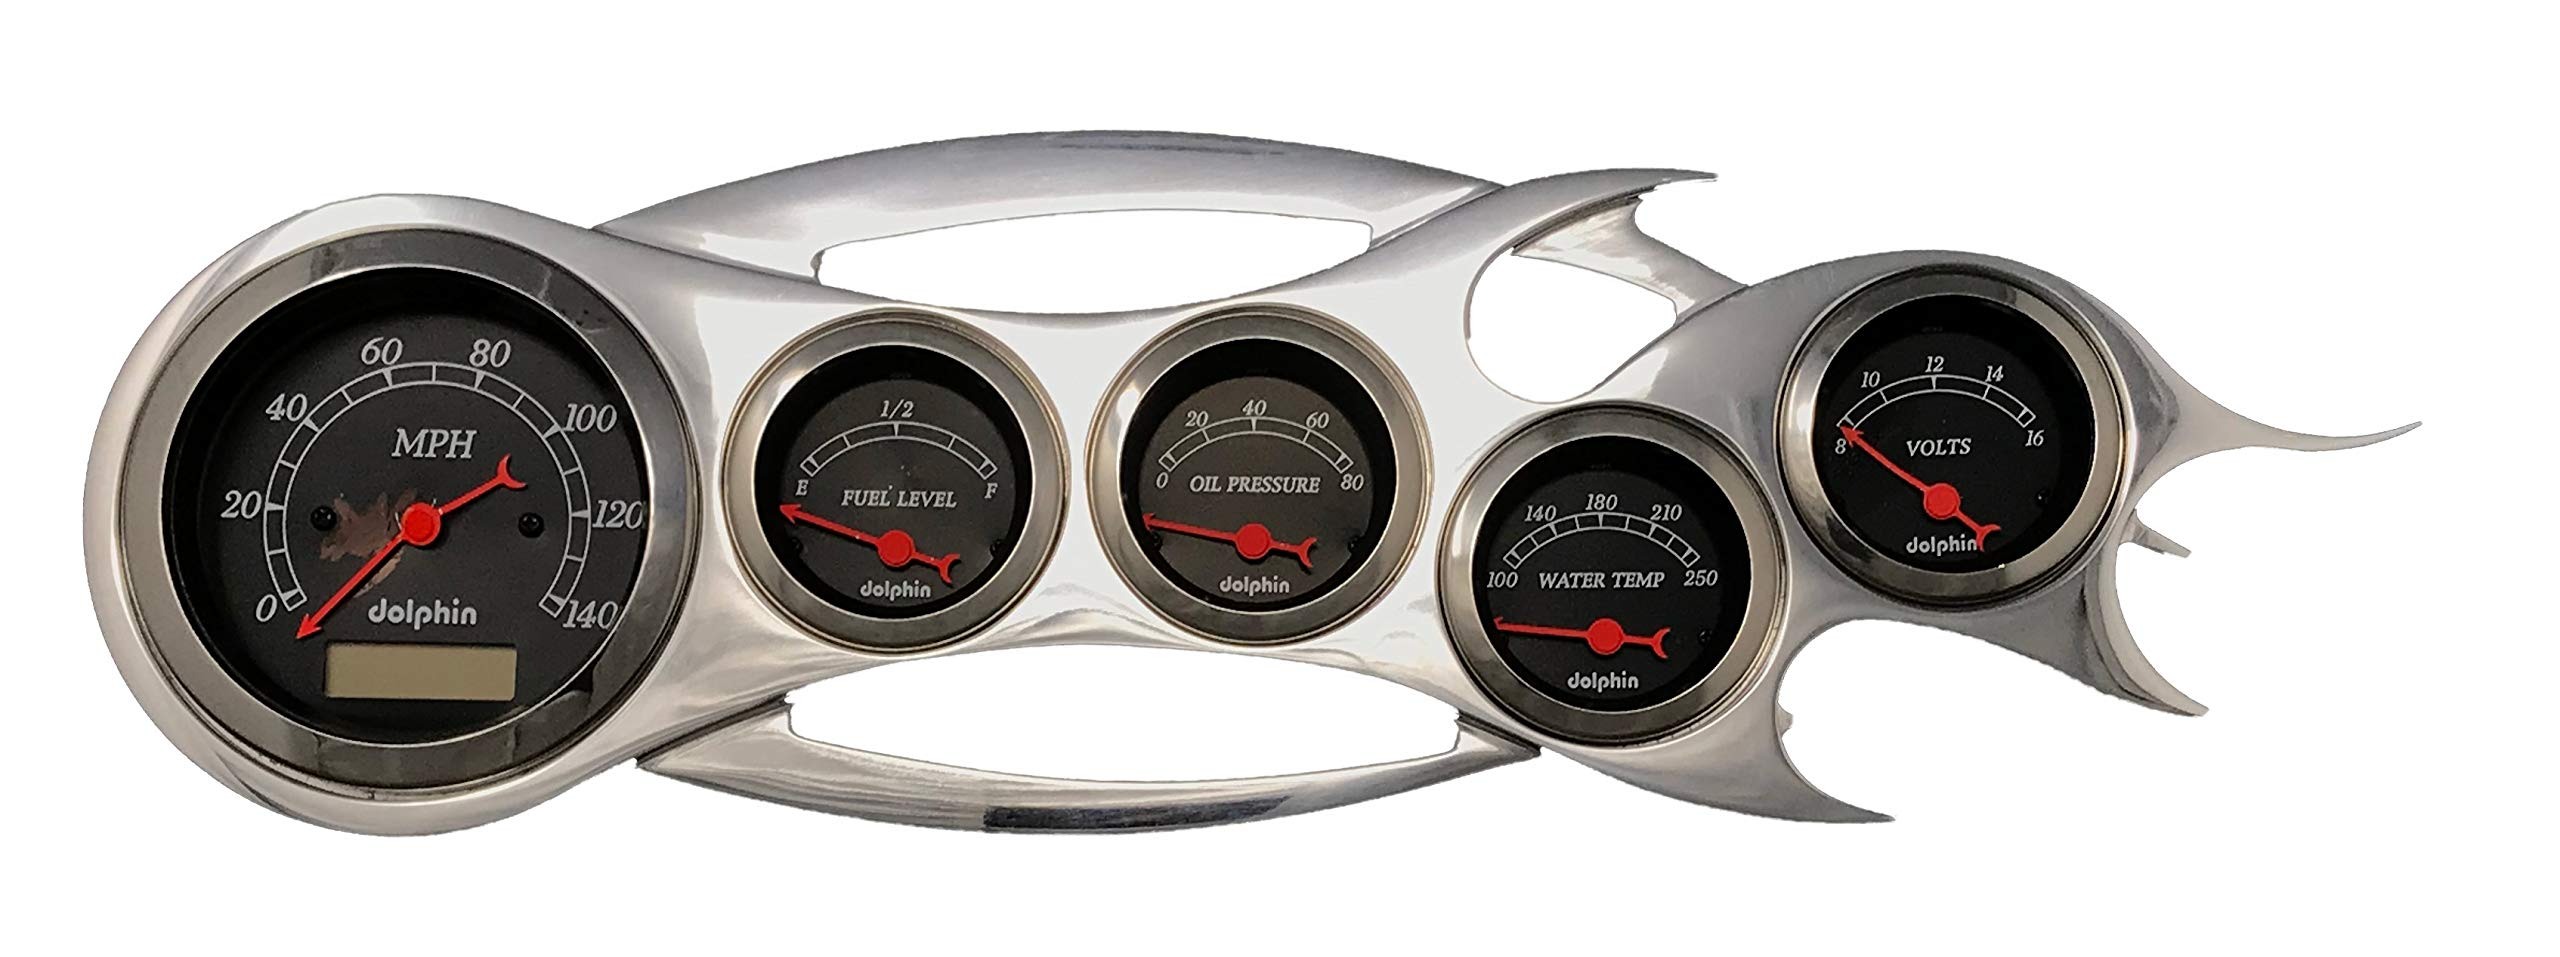 Universal Flame - 5 Gauge Dash Cluster Panel - Programmable - Black by Dolphin Gauges